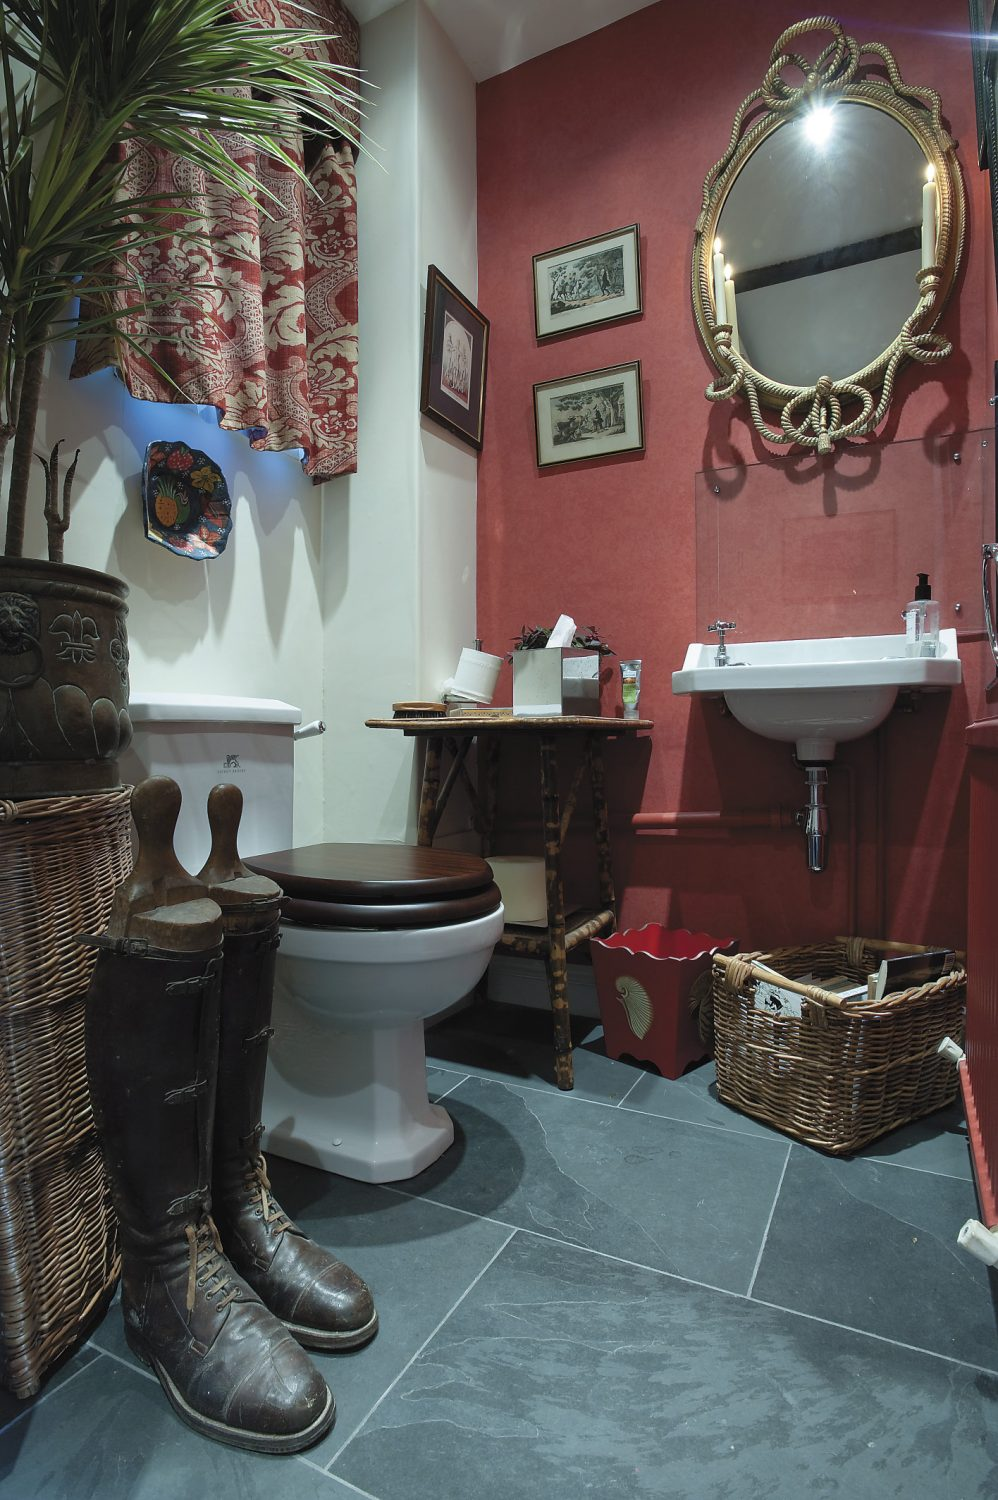 the antique, rope-effect mirror in the flamboyant downstairs loo was bought at auction from Gorringes ...